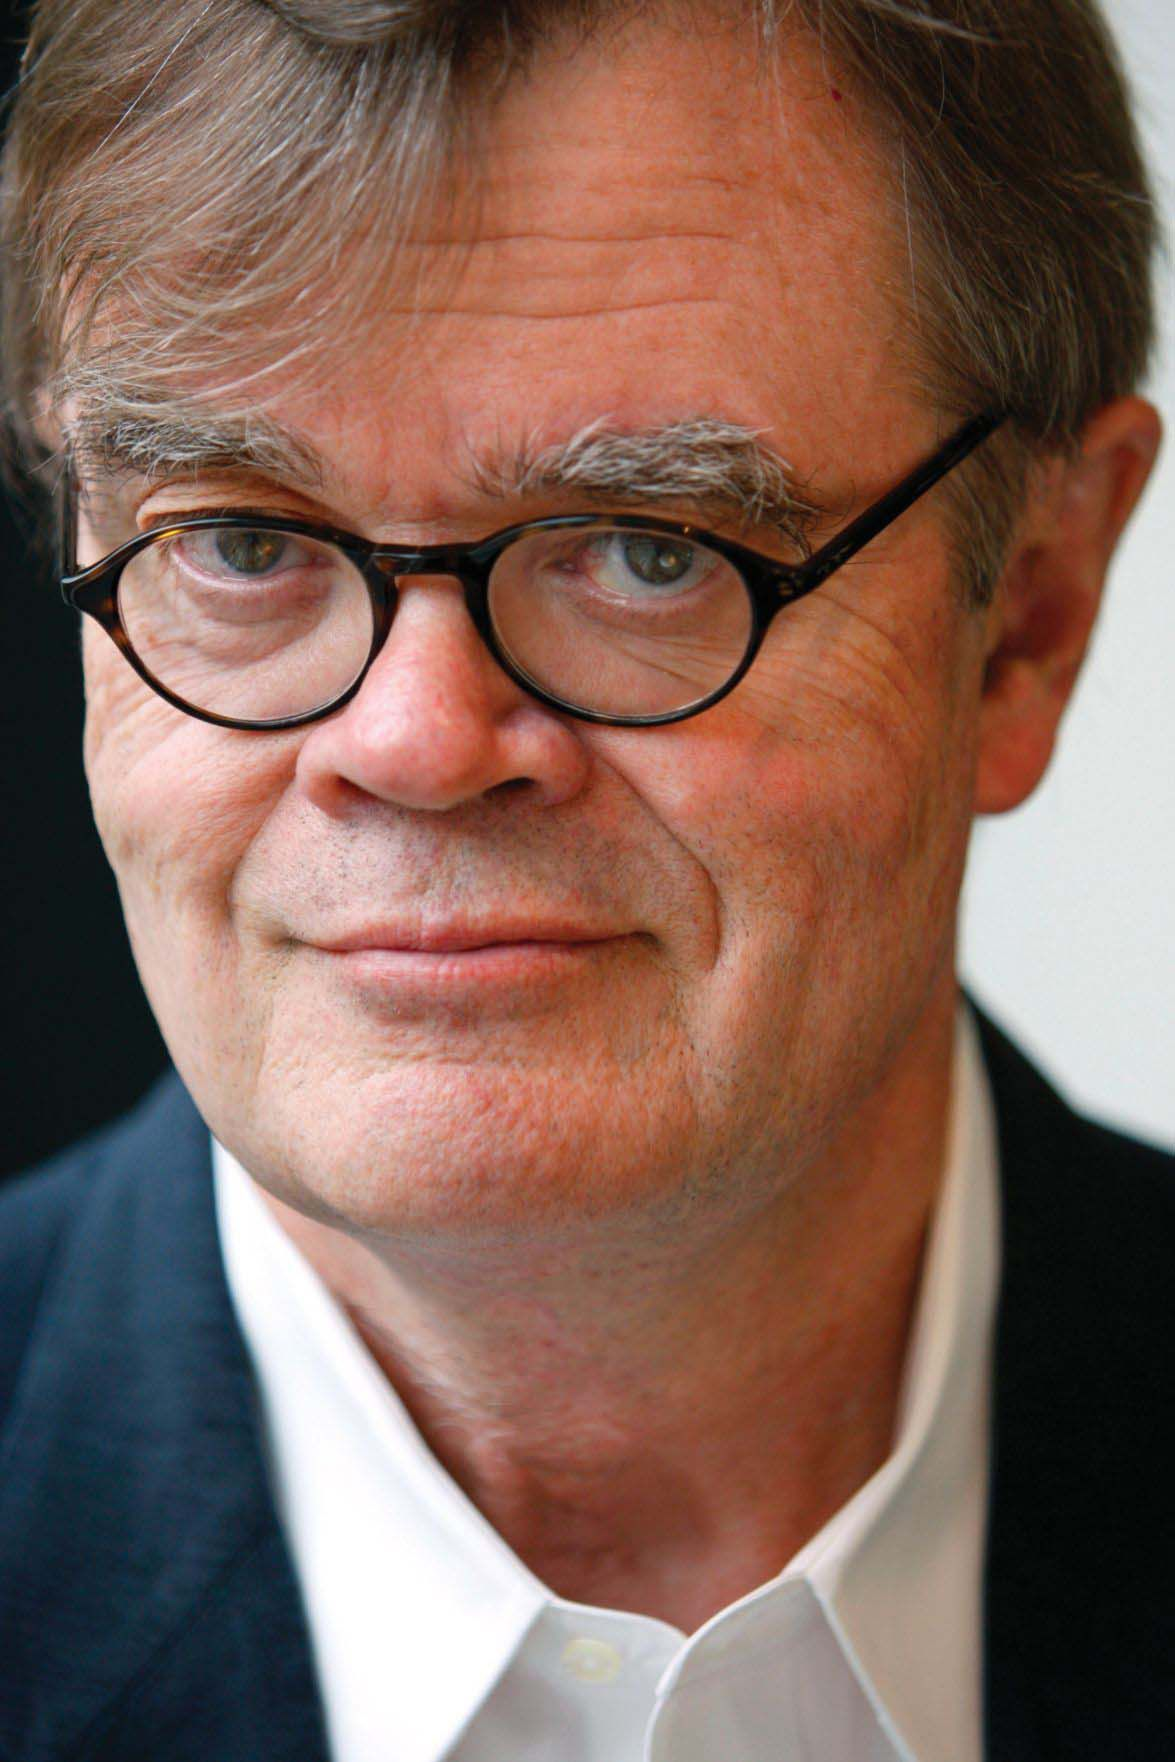 Garrison keillor a conservative on the left says check your rear garrison keillor a conservative on the left says check your rear view mirrors and forget about tattoos expocarfo Gallery